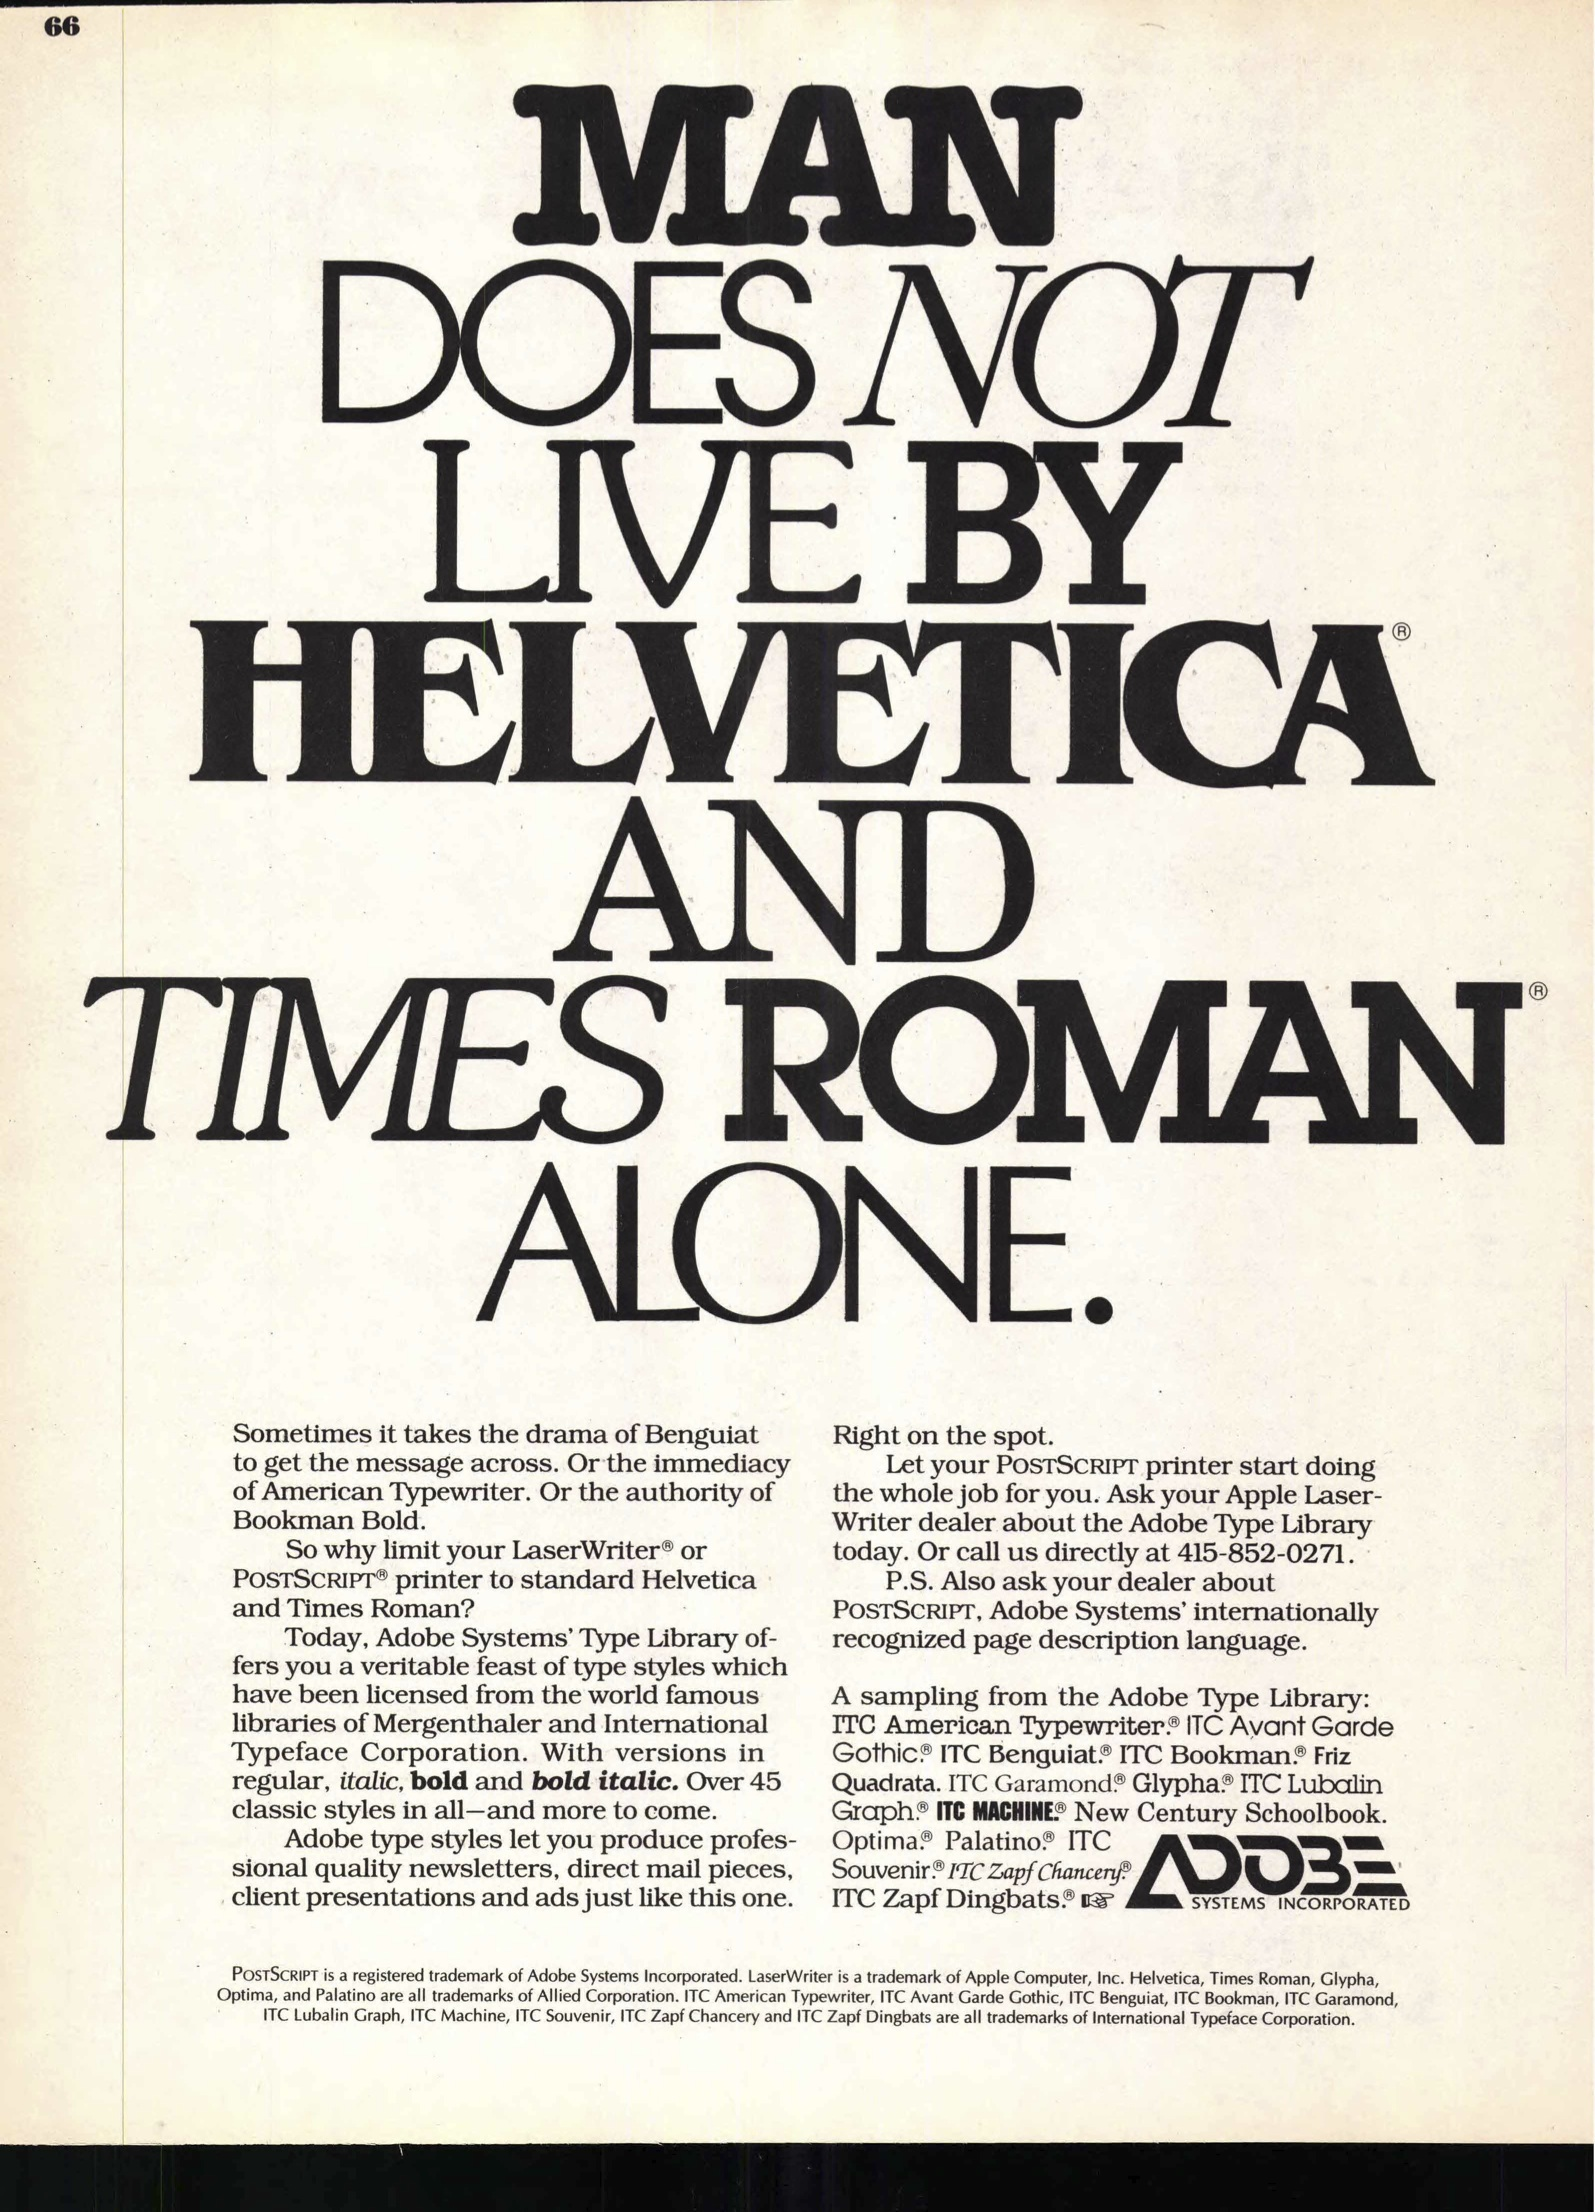 Adobe ad in U&lc, 1987 - Fonts In Use